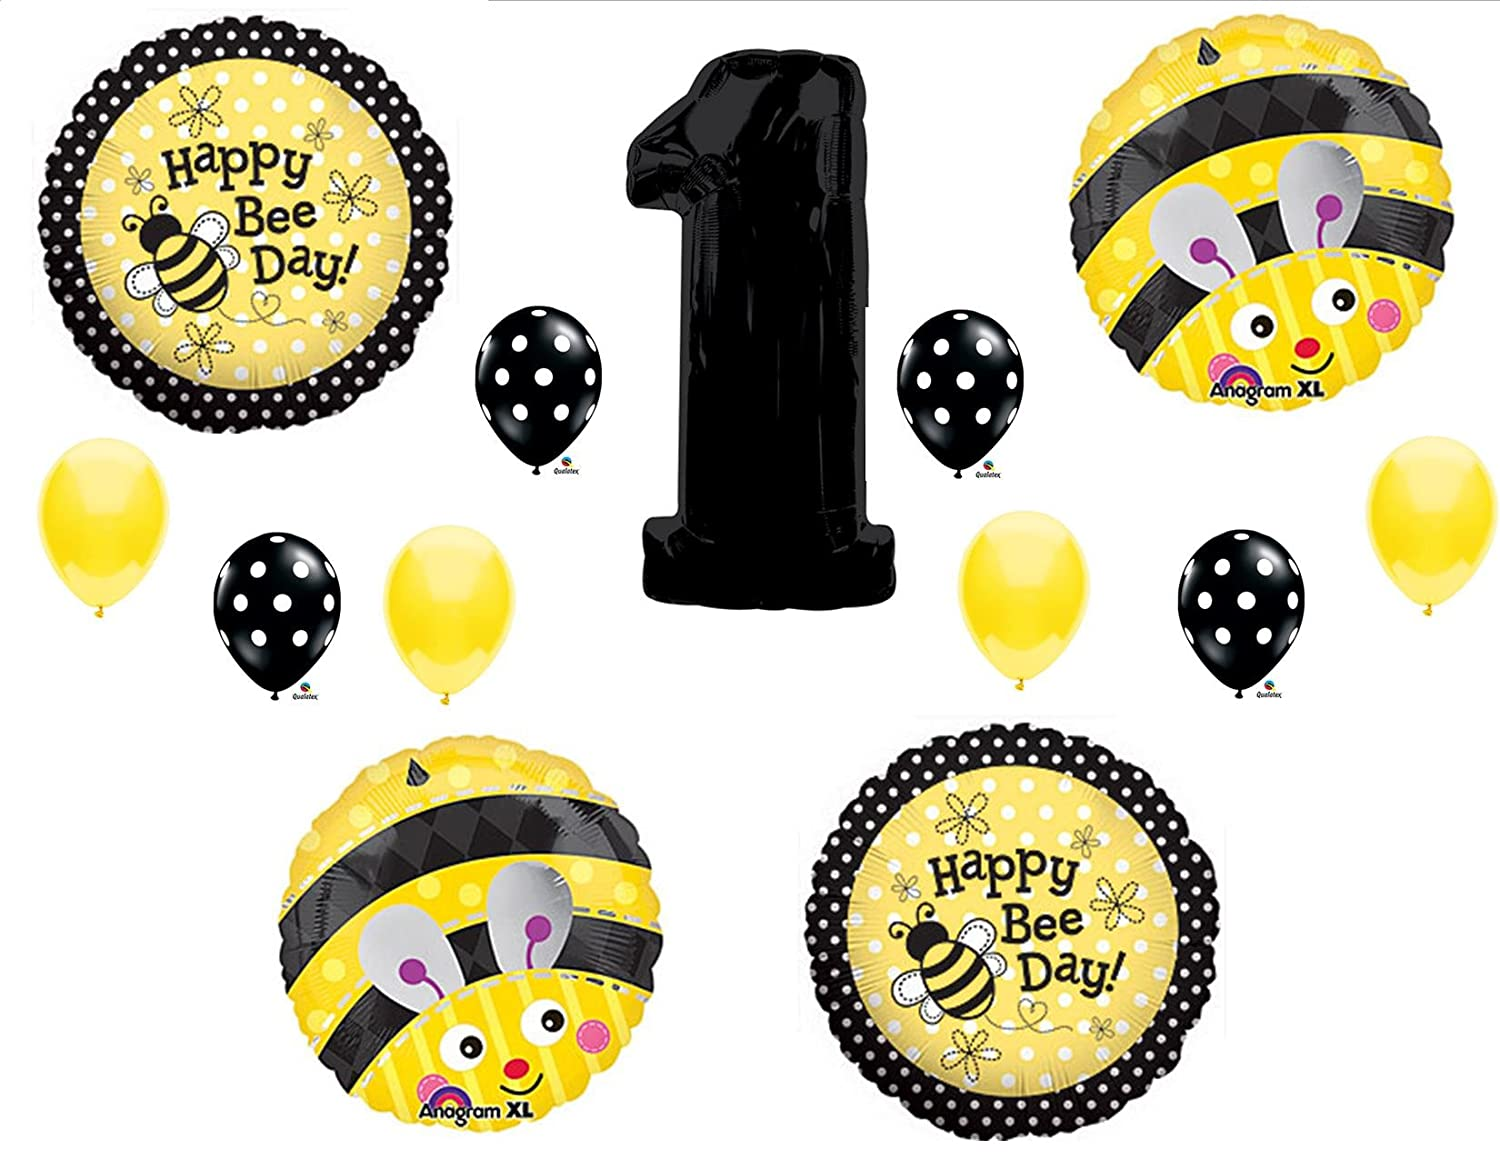 Amazon BUMBLEBEE 1st First Happy Birthday Party Balloons Decorations Supplies Toys Games